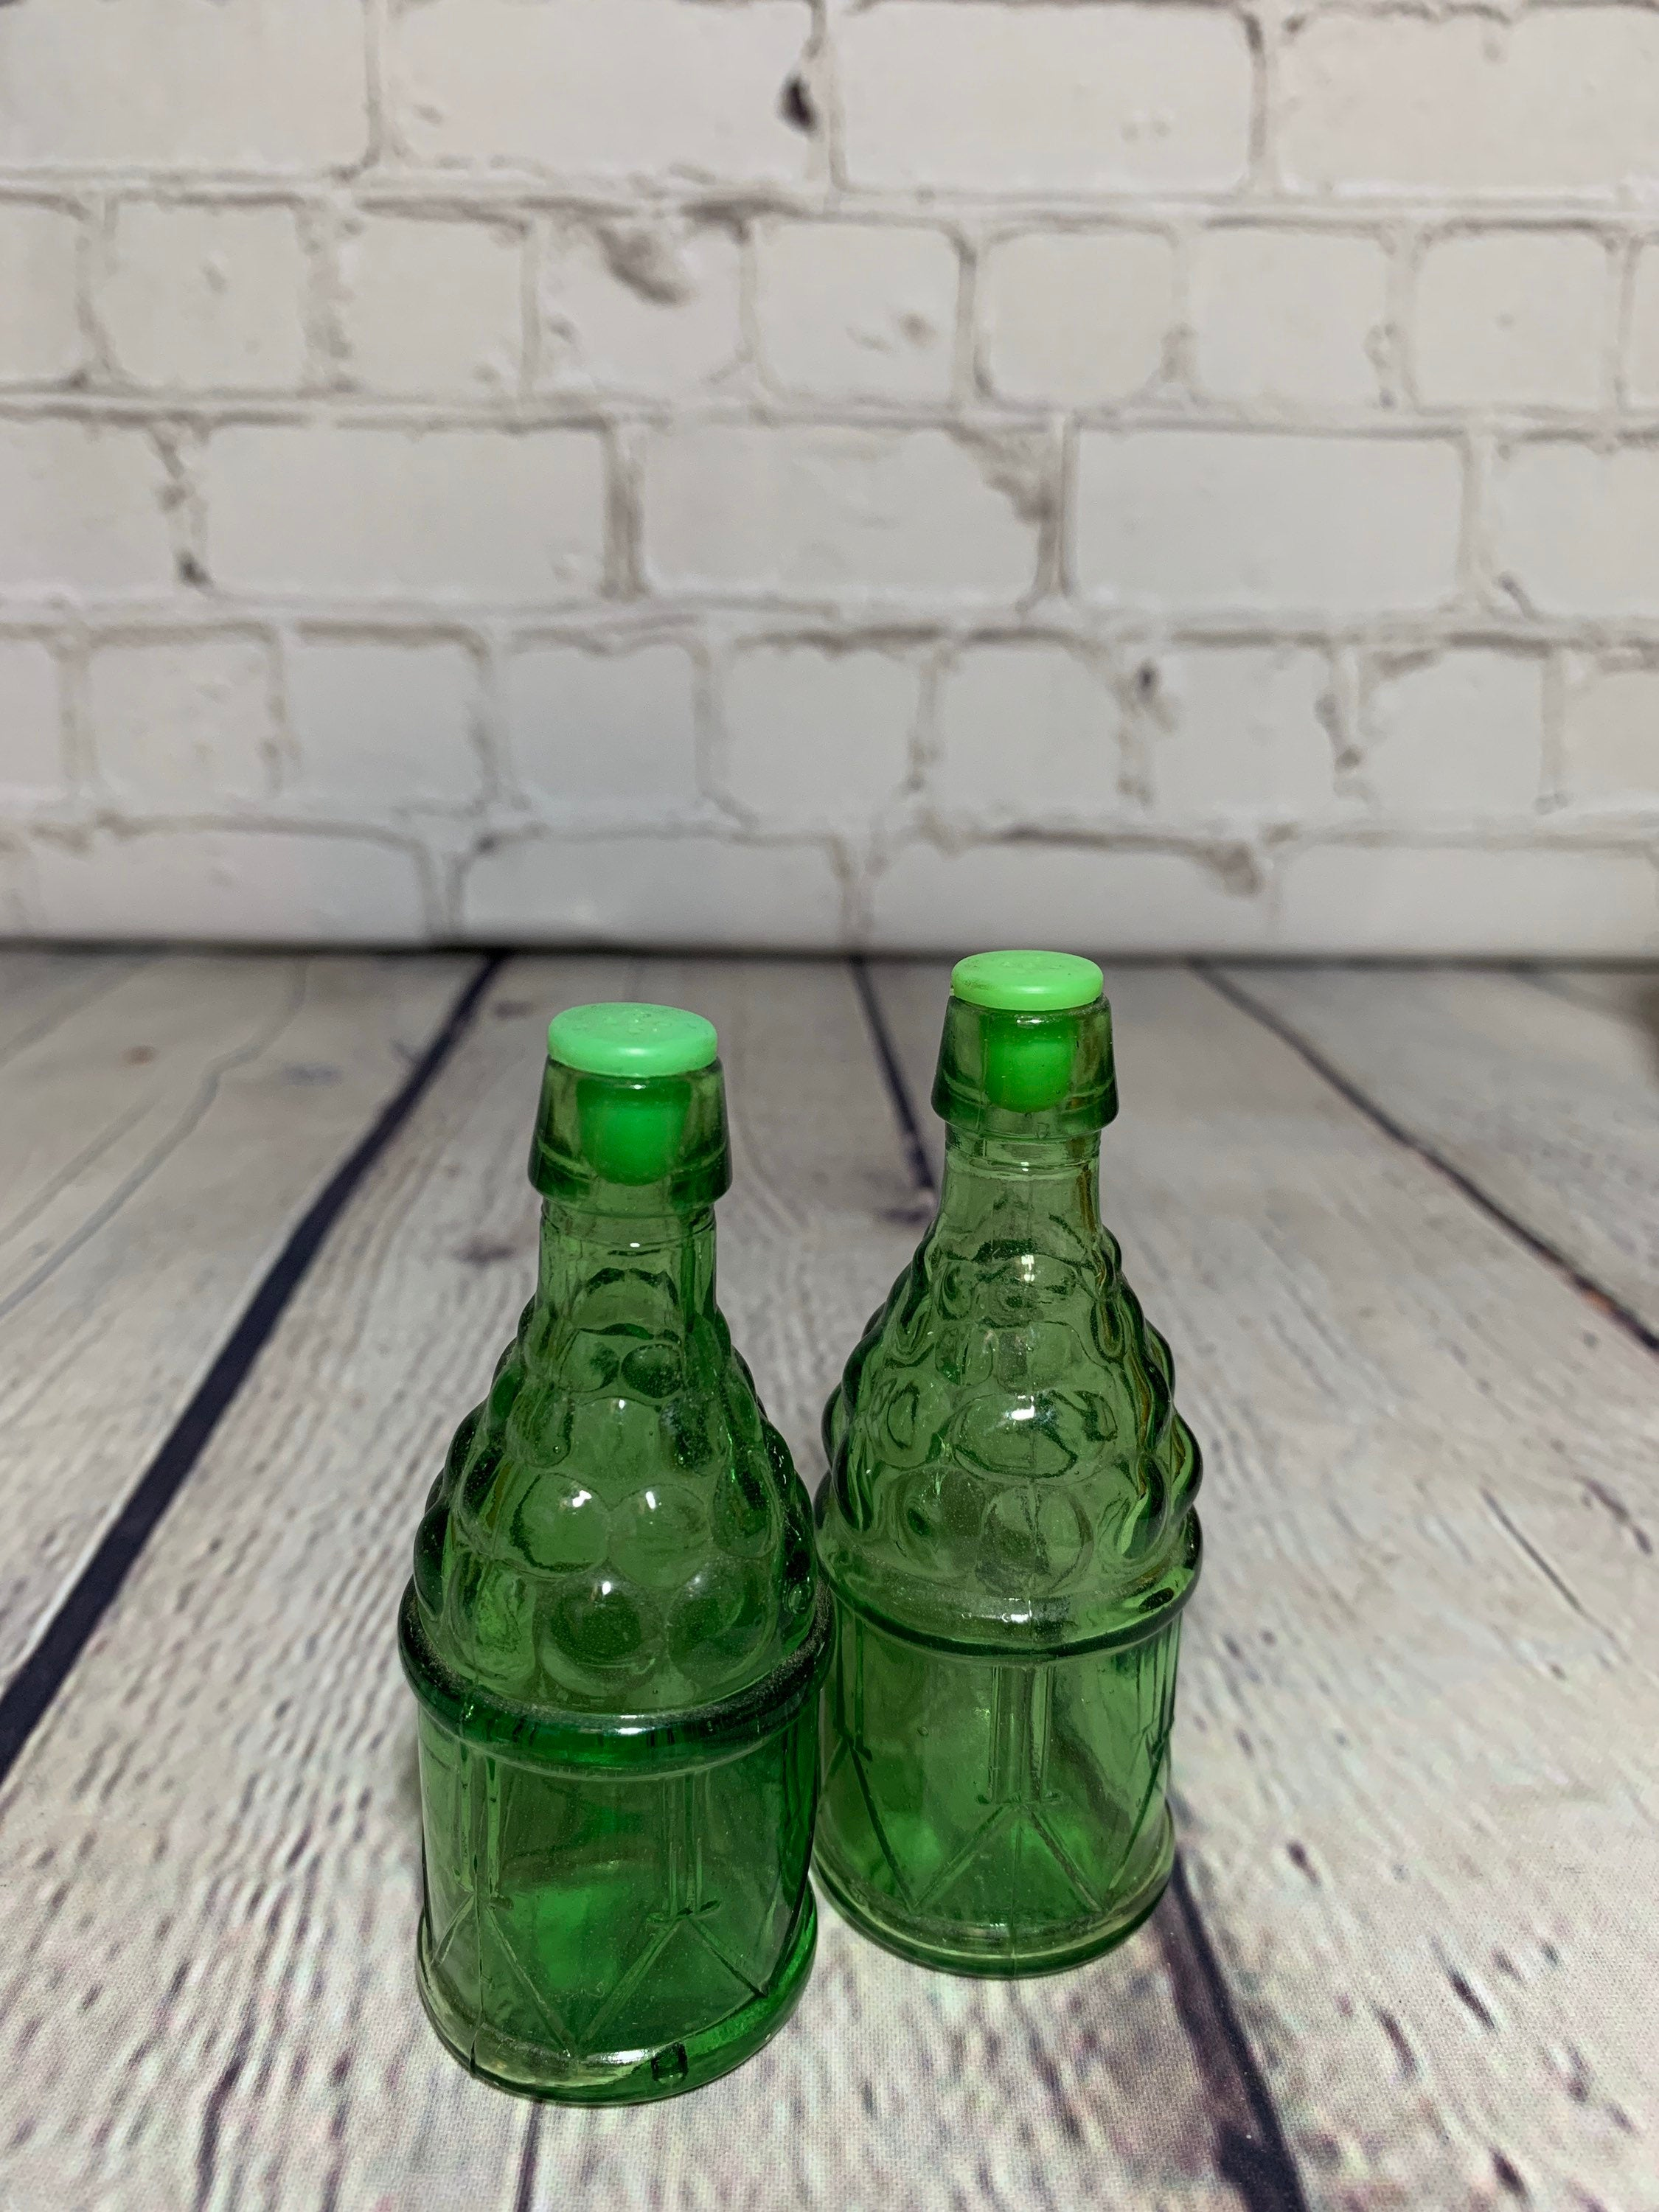 Vintage Green Tint Pressed Glass Design Salt & Pepper Shaker- Taiwan 1980's